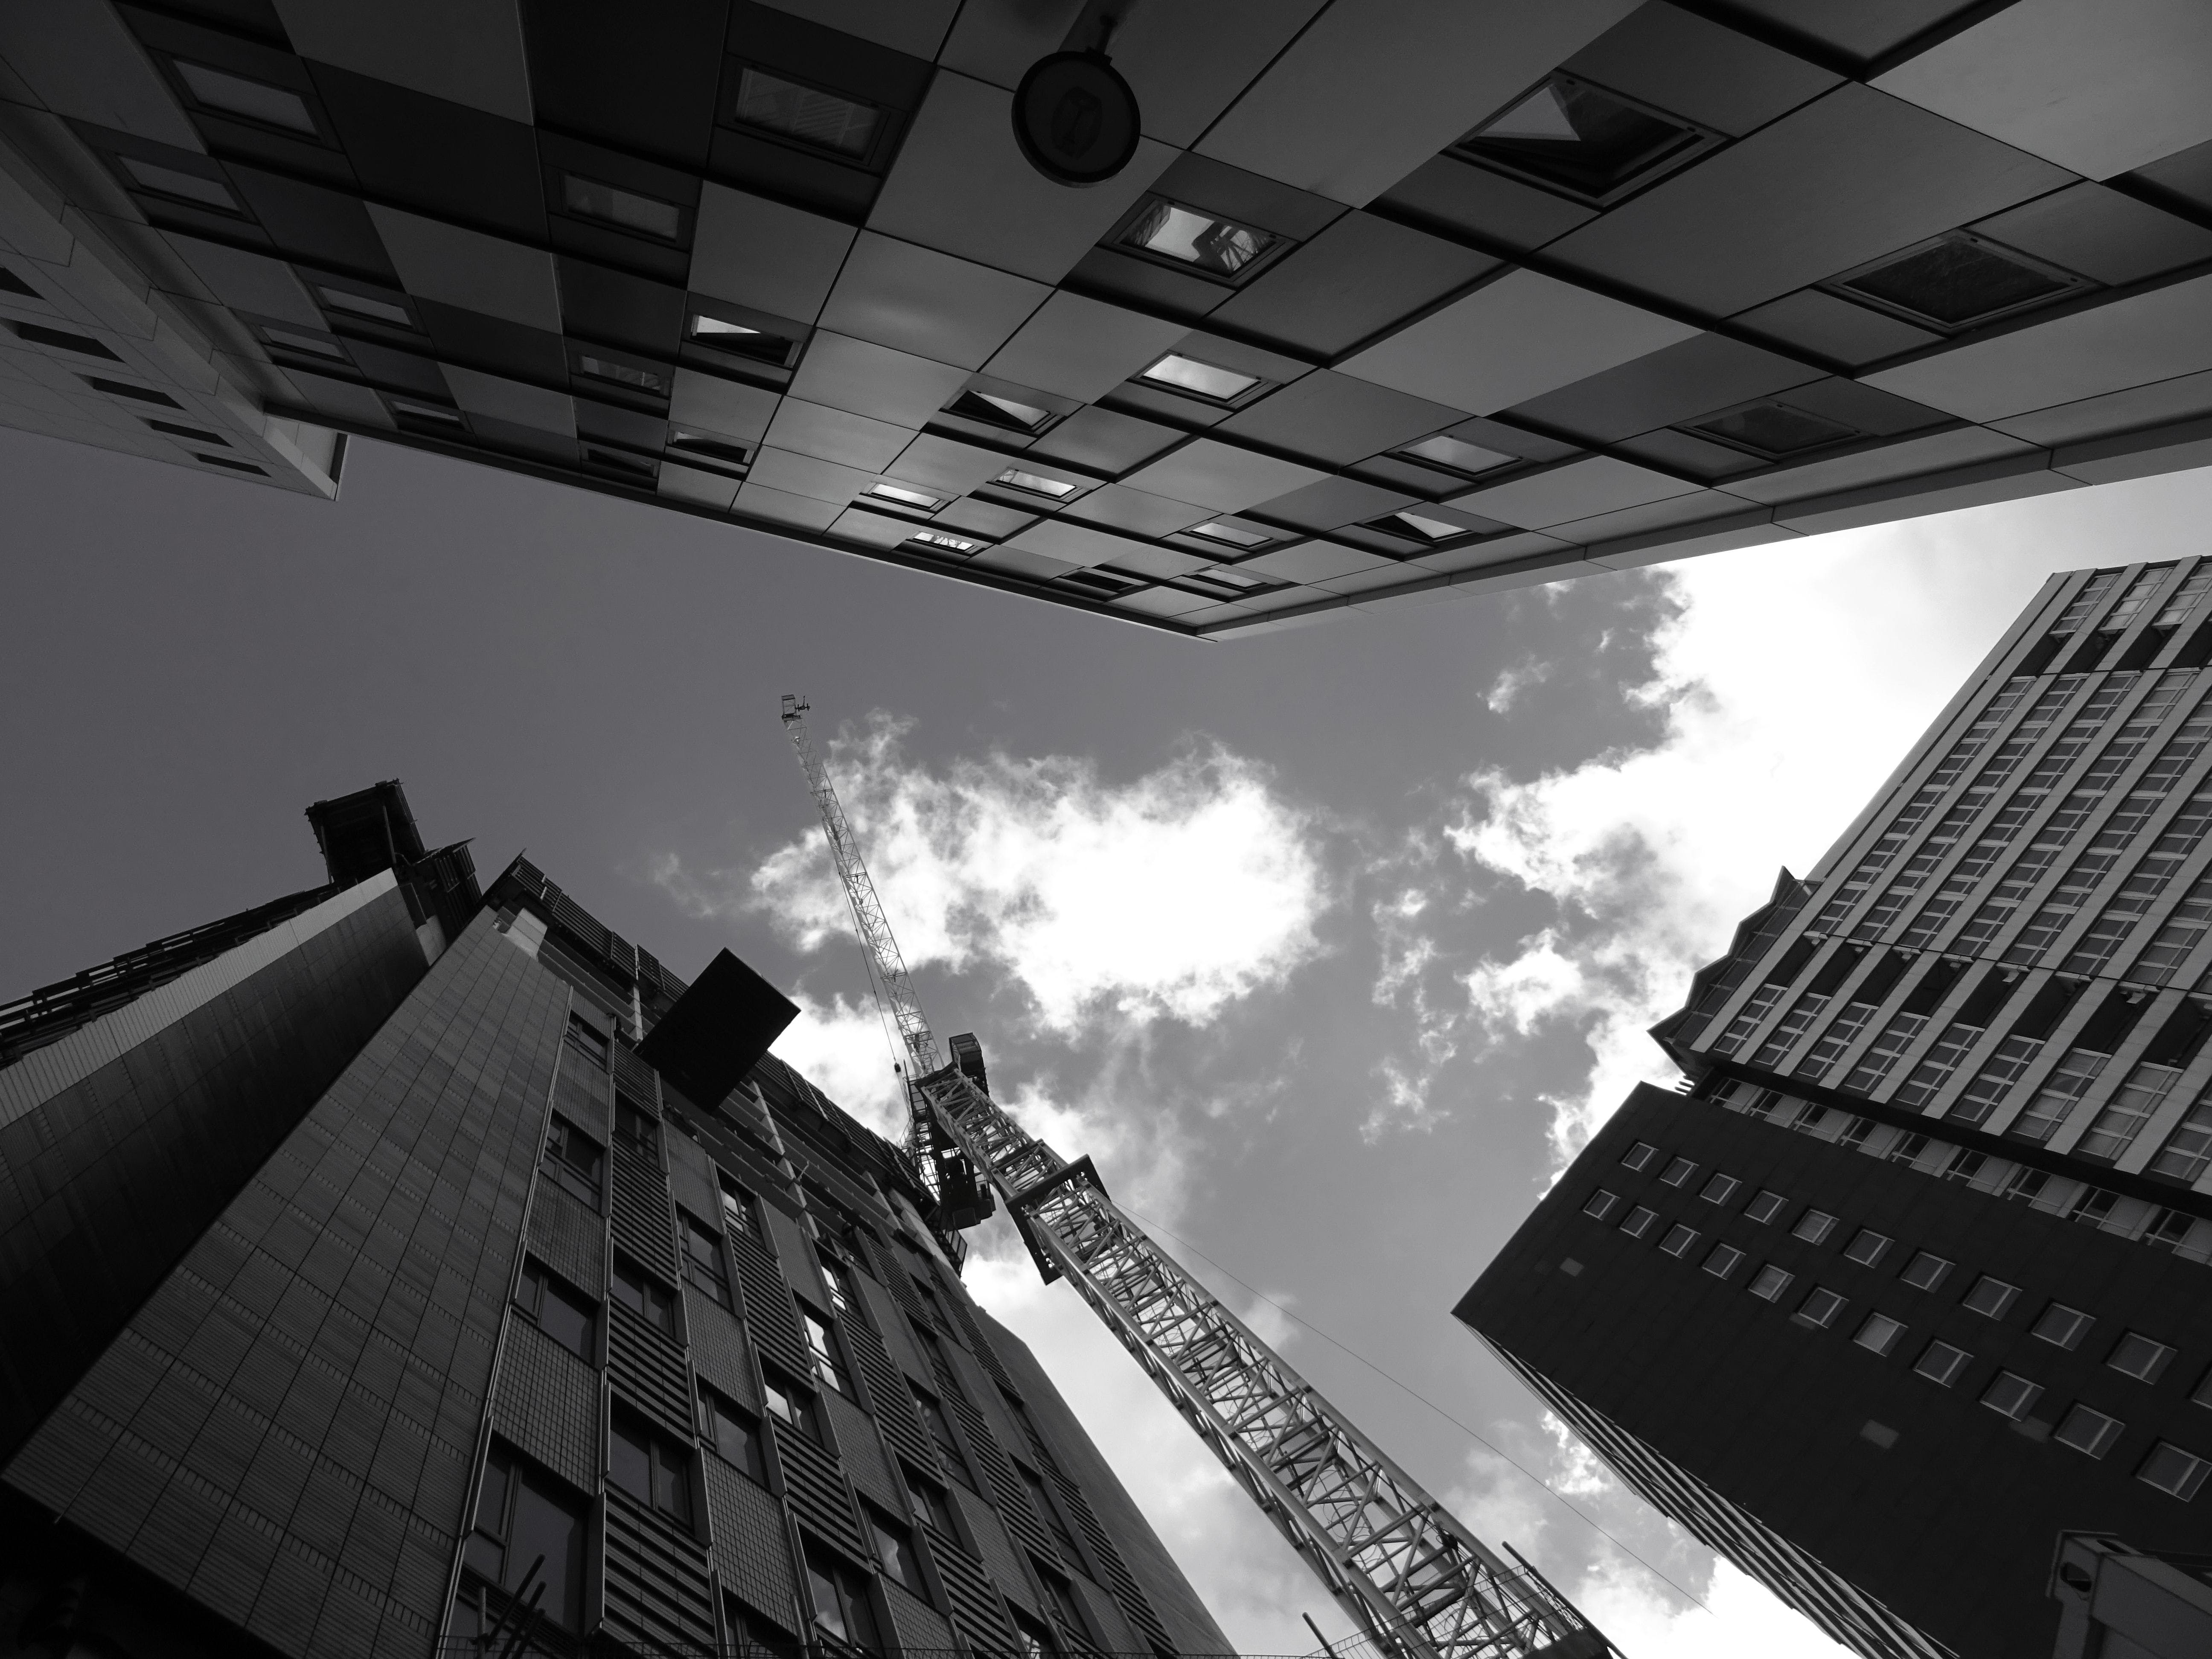 architecture, black-and-white, building exterior